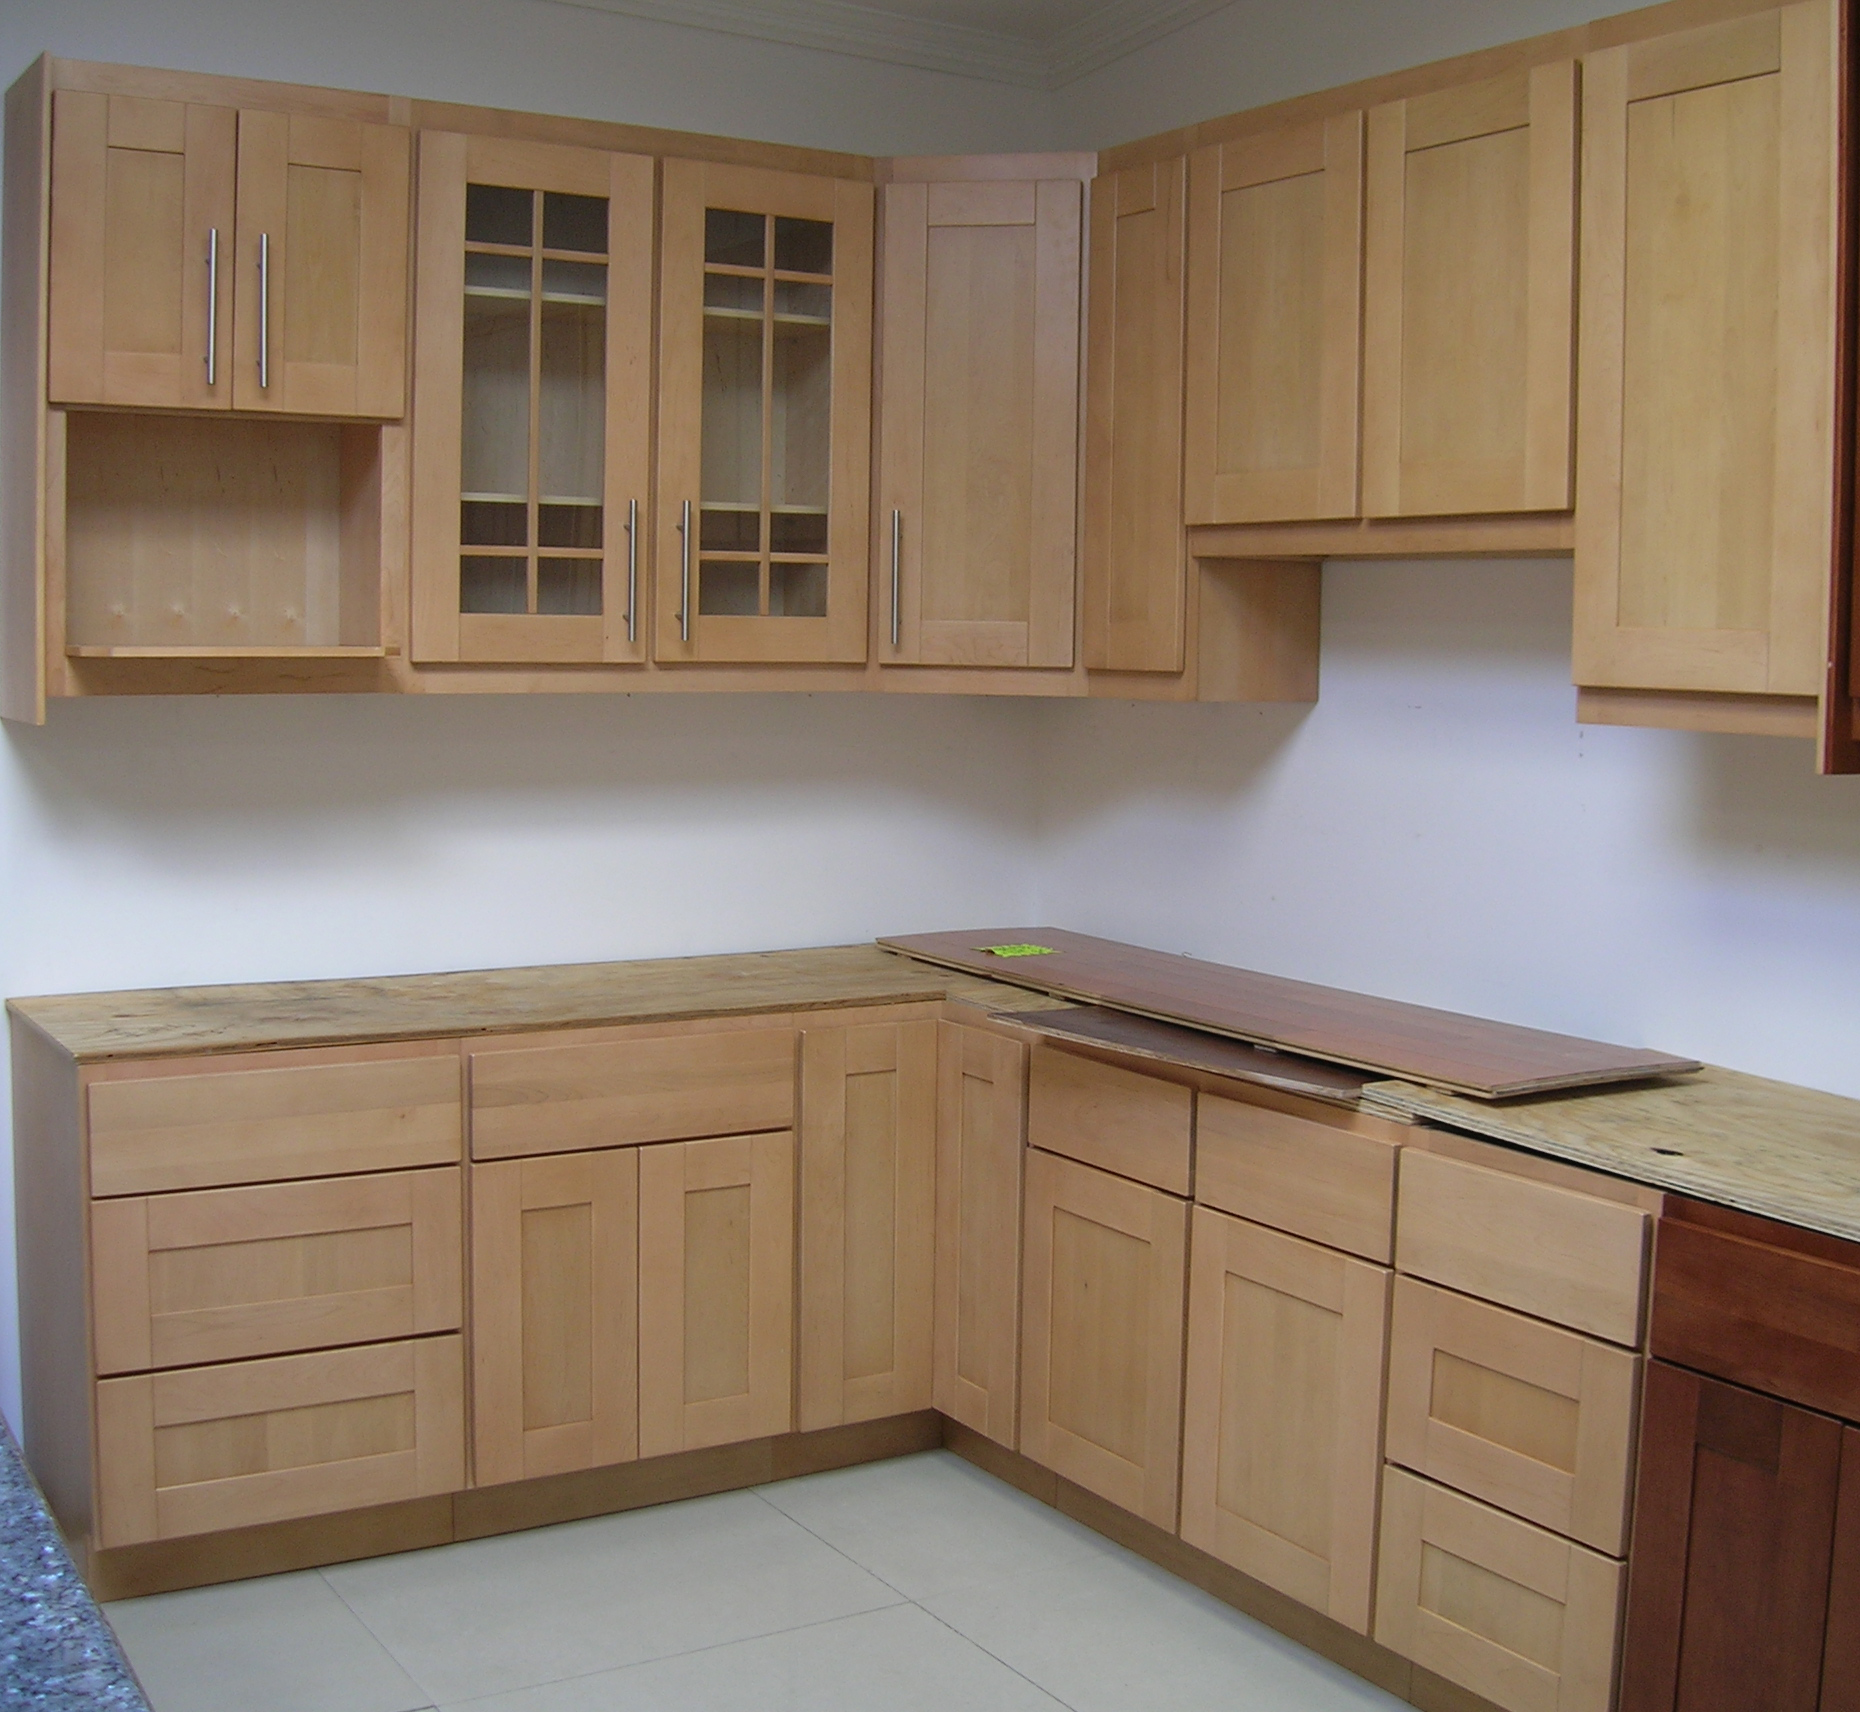 Simple building kitchen cabinets 2016 for Build simple kitchen cabinets